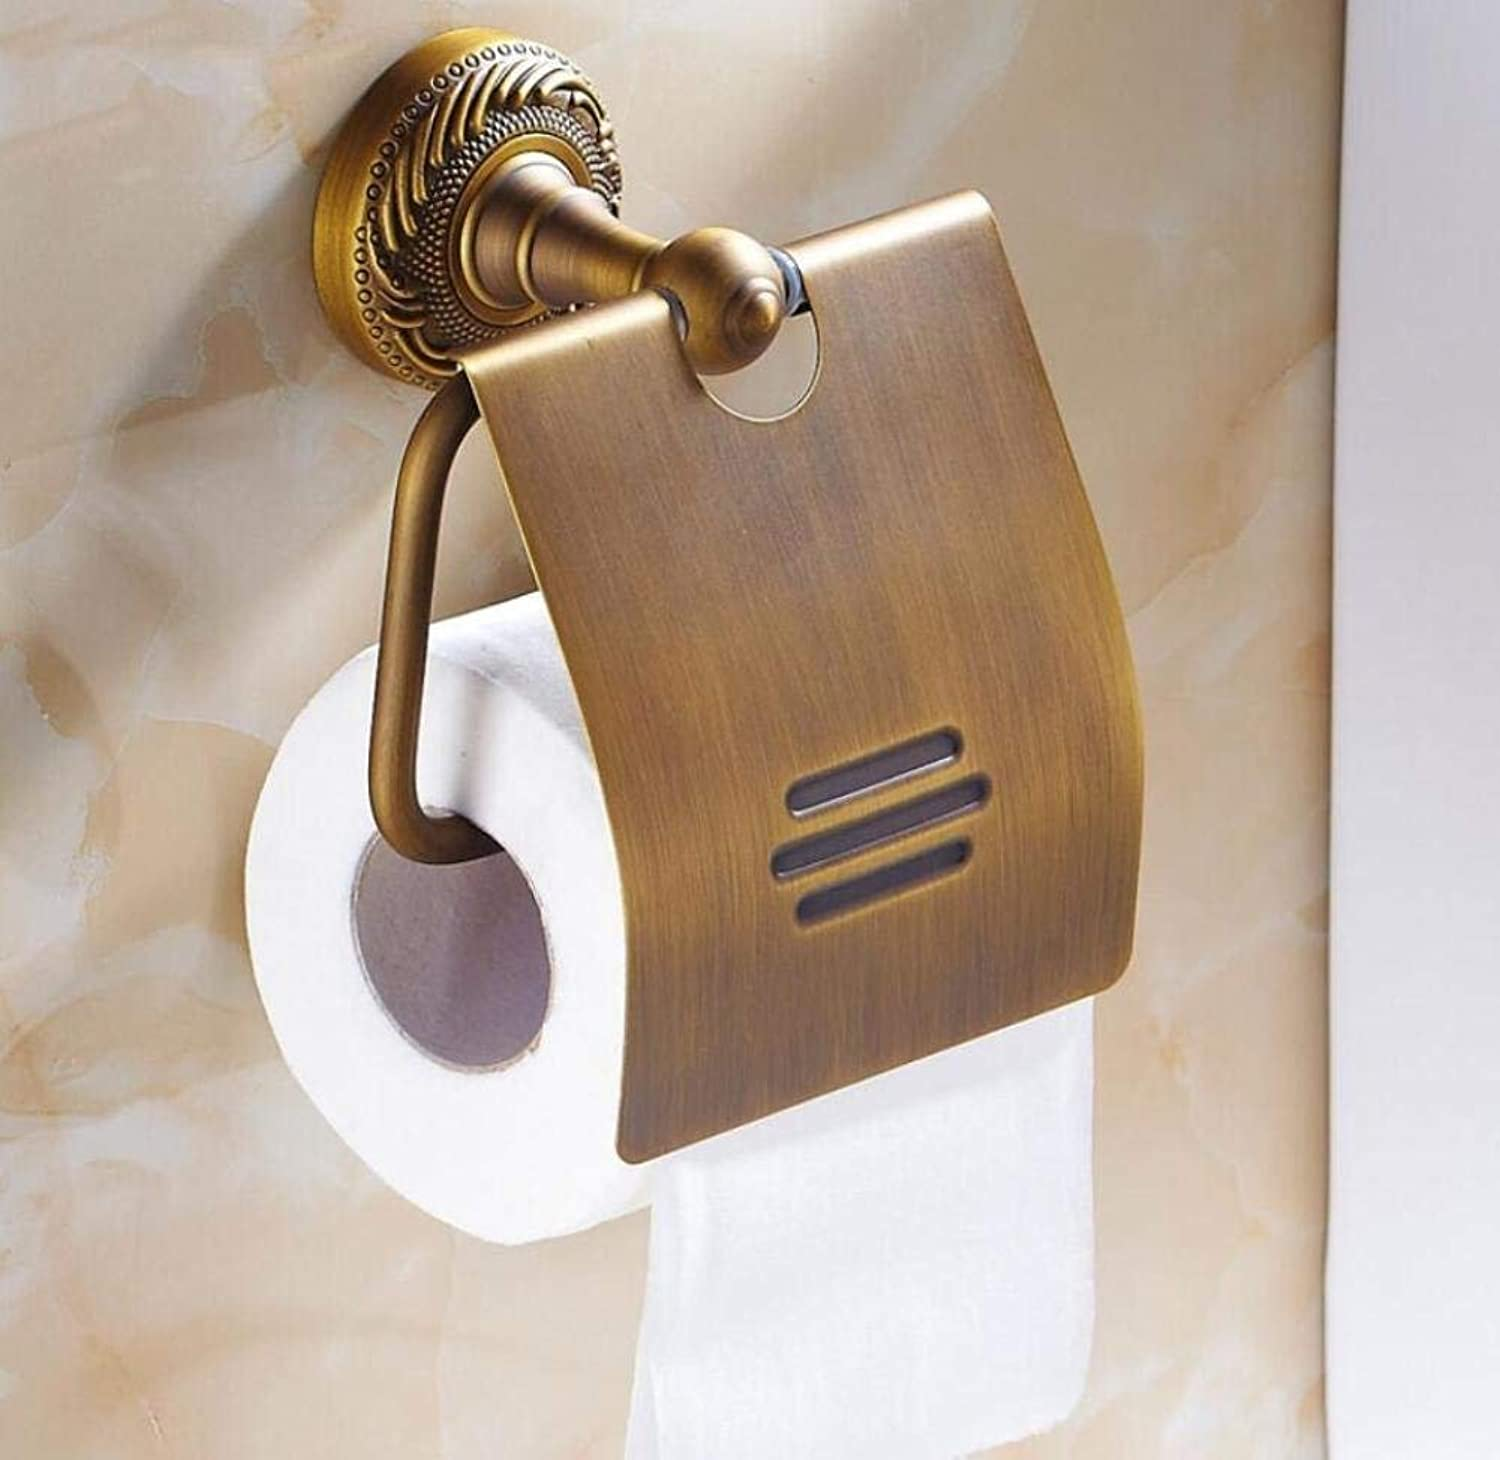 European Fabric Copper for The Wall Mount Accessory Holder of Bathroom Toilet distributors in Place Holders of Toilet Paper Door-Fabric Vintage of The Organization of Storage Space